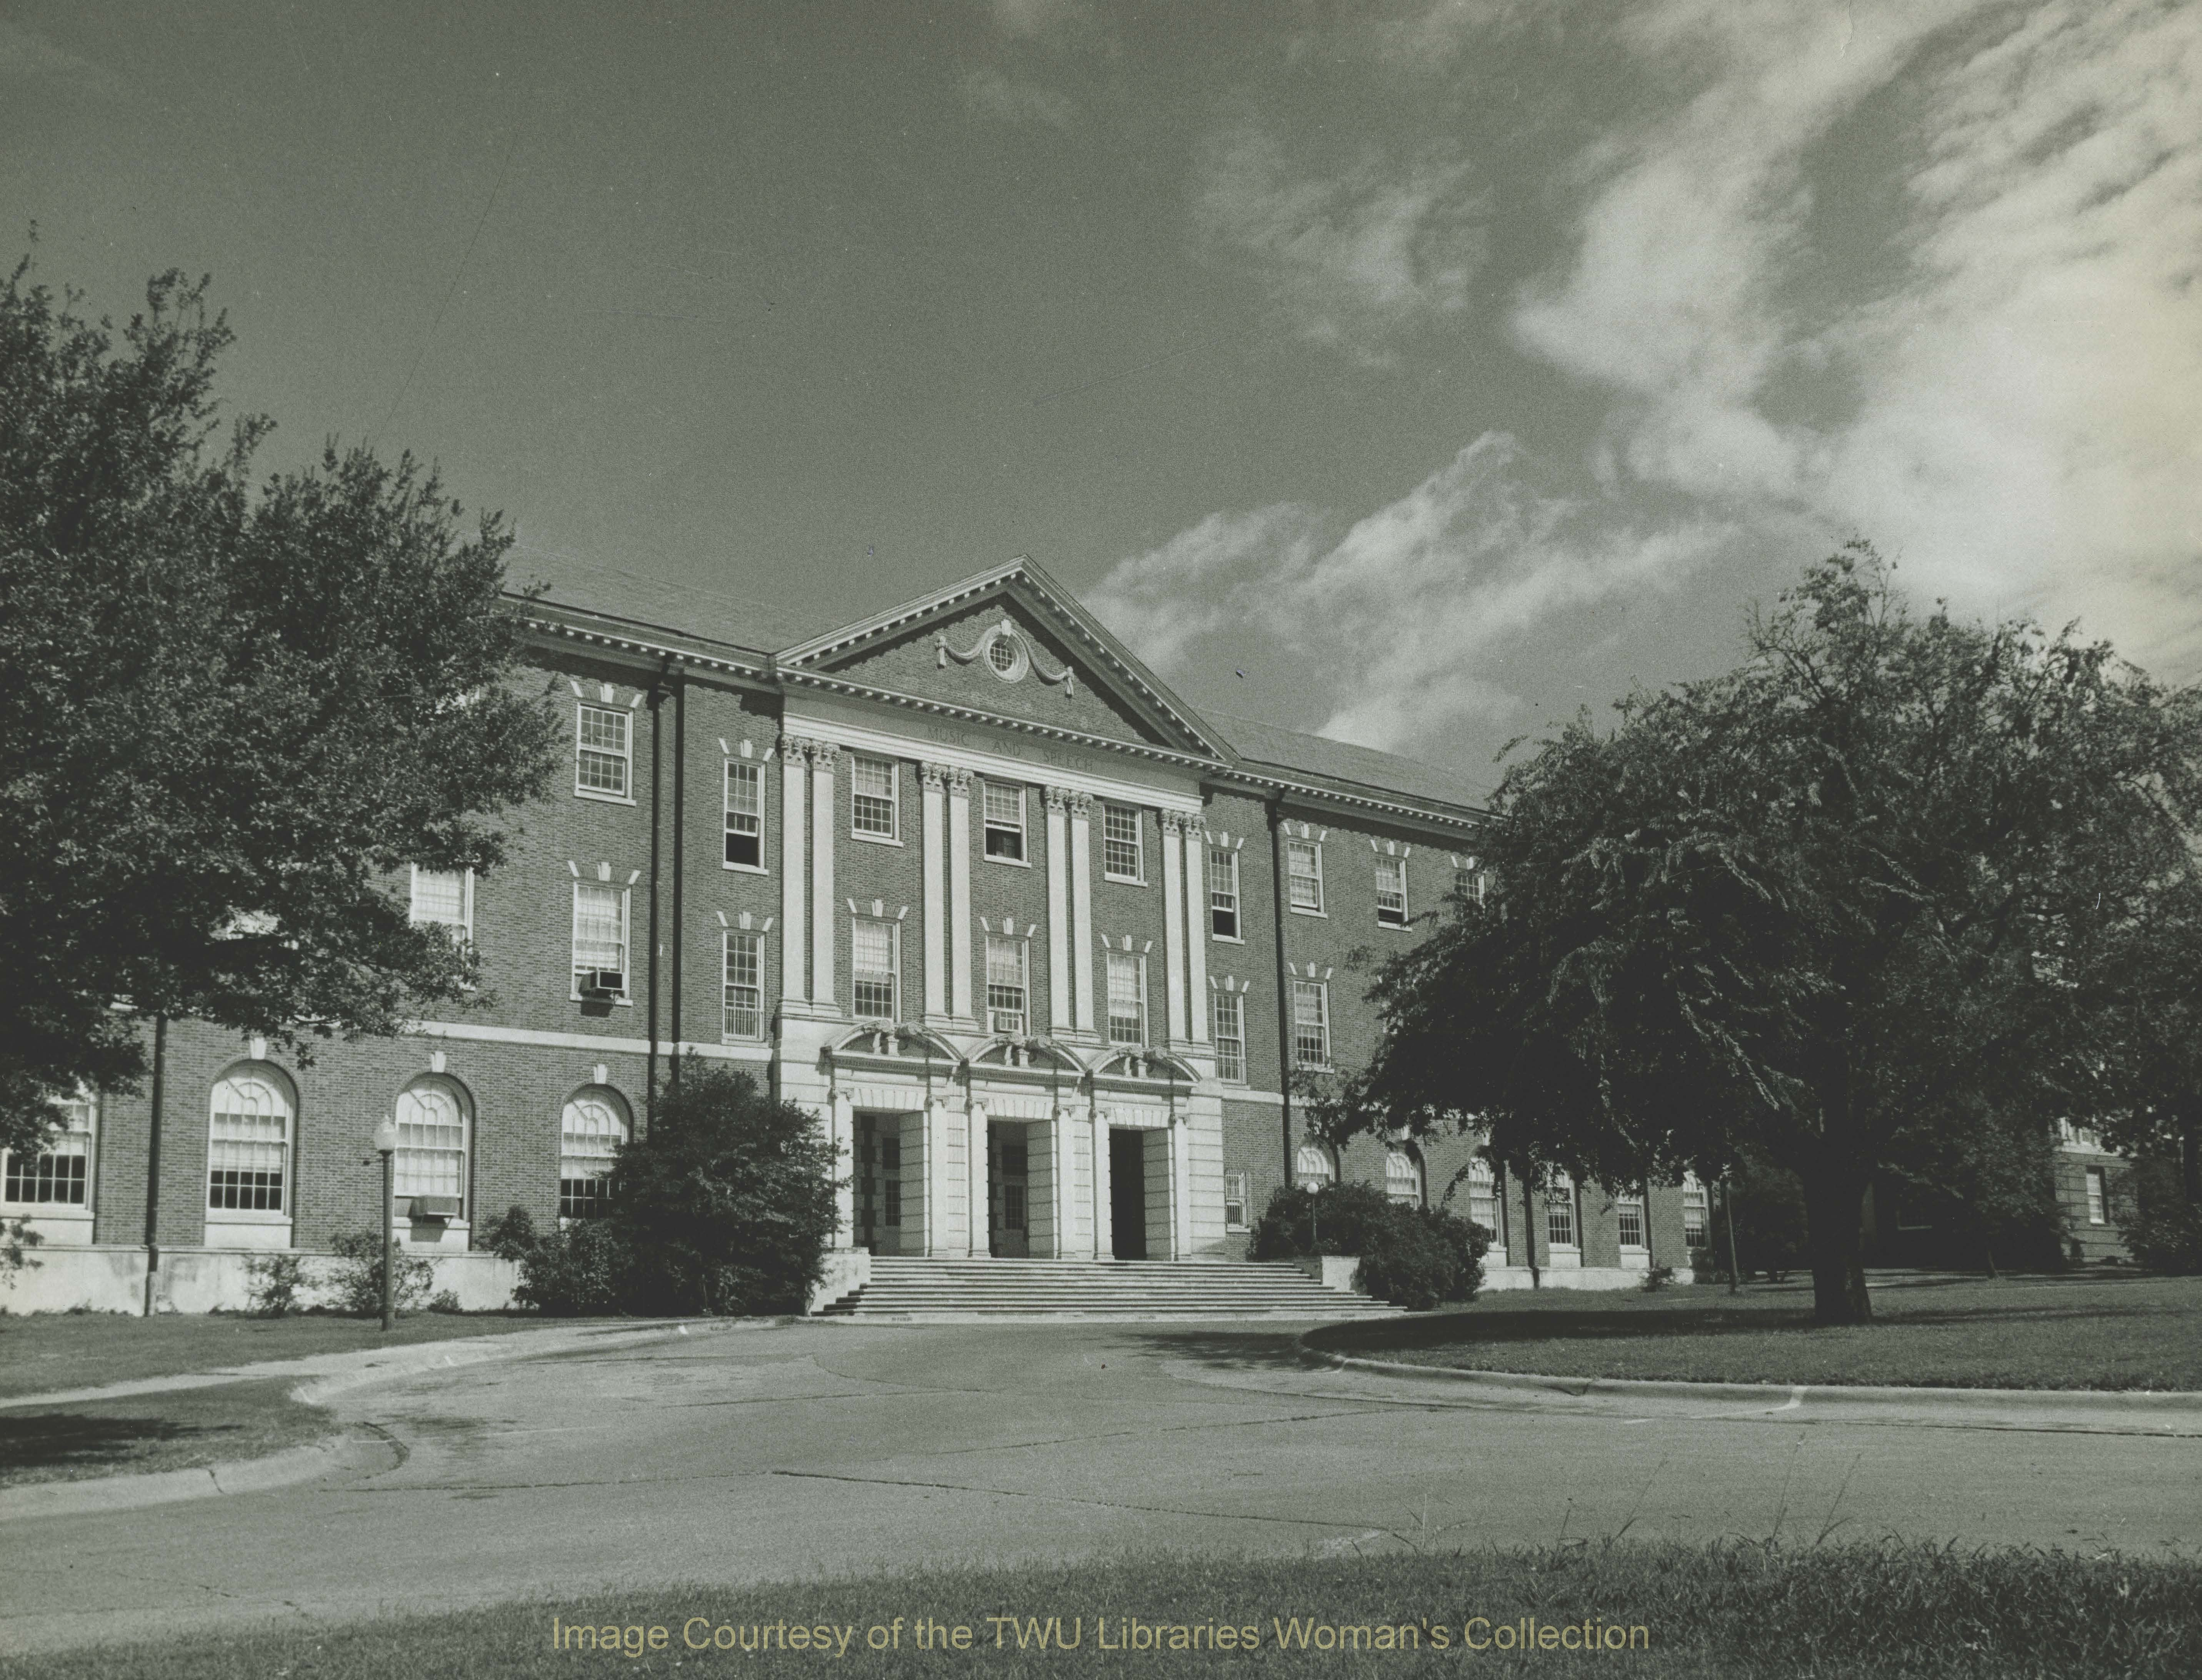 TWU Music Building Unknown Date. Courtesy of the Texas Woman's University Woman's Collection